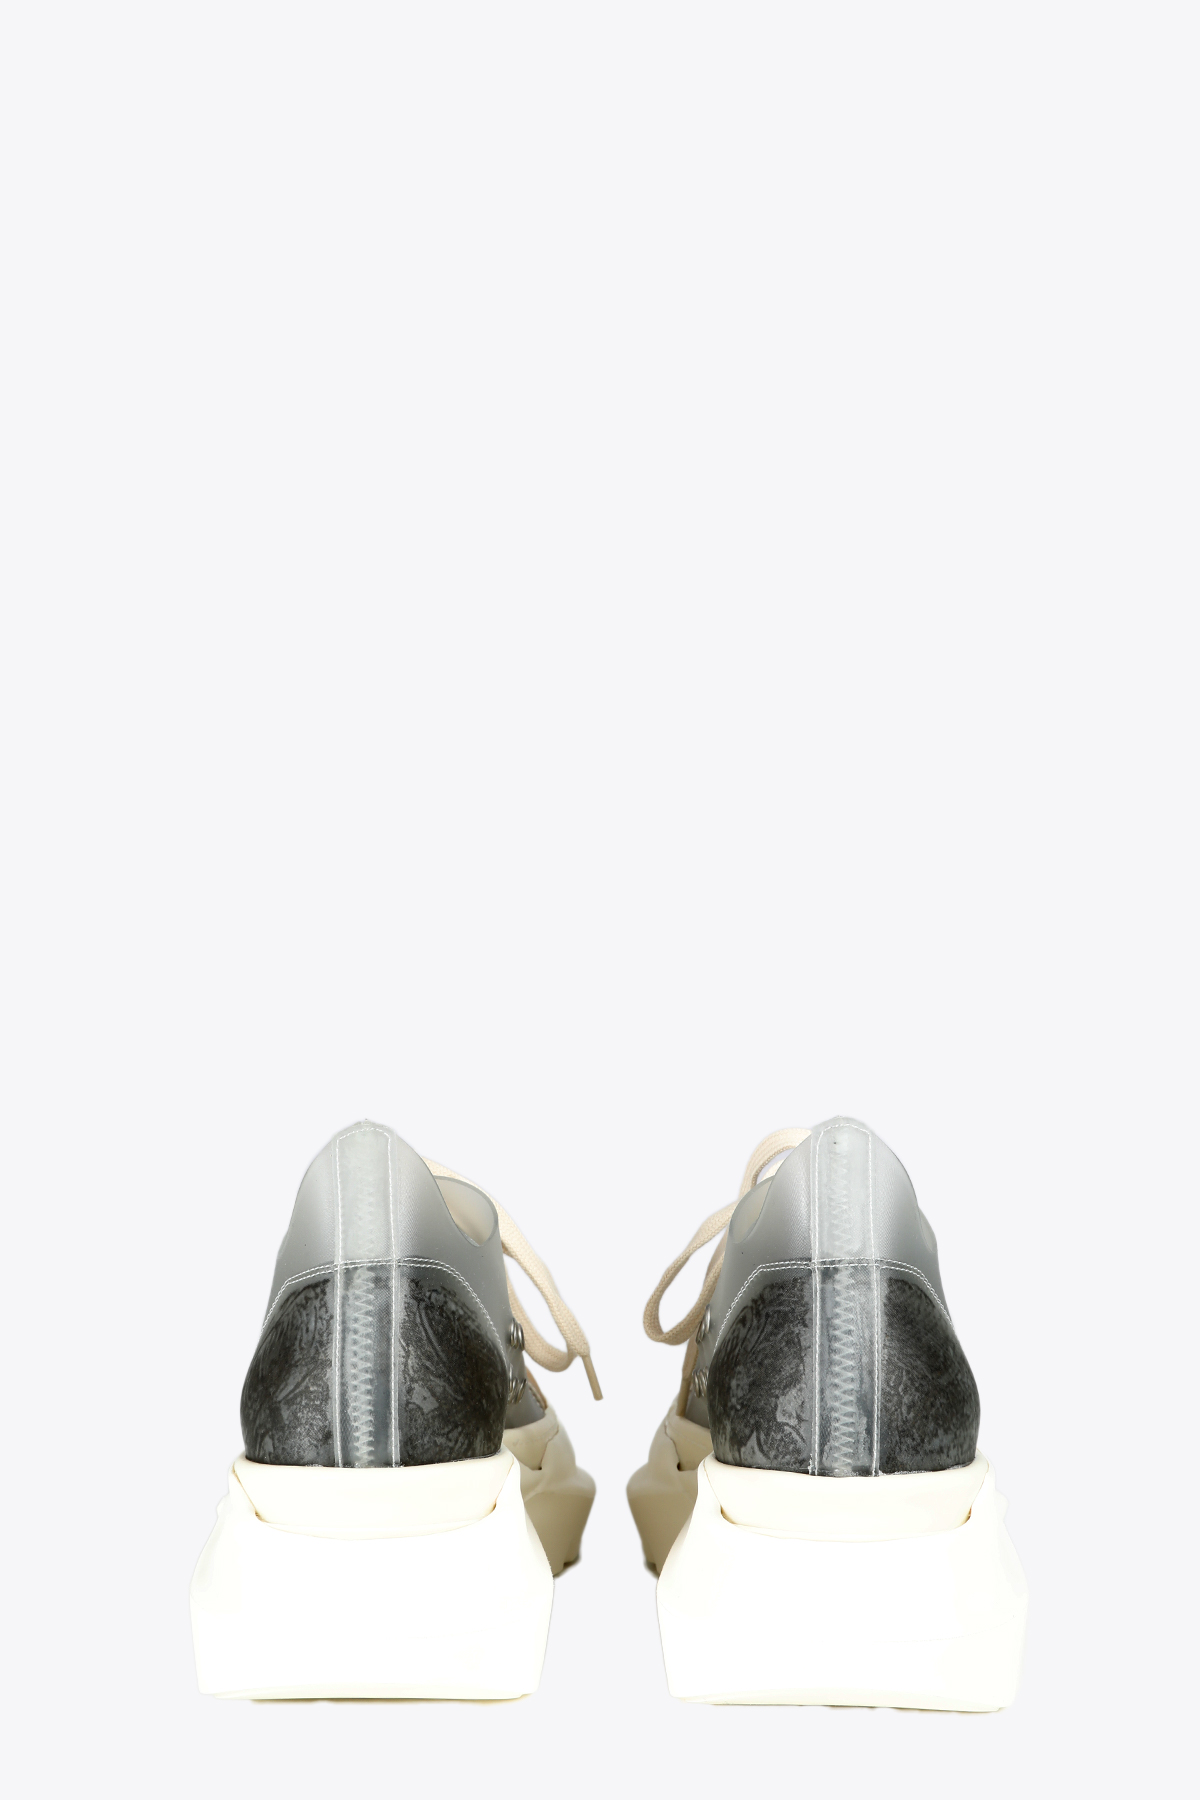 SENAKER BASSA IN PVC TRASPARENTE CON SUOLA ABSTRACT RICK OWENS-DRKSHDW | 10000039 | DU21S2842 VYTMS1 ABSTRACT LOW SNEAKERS101111